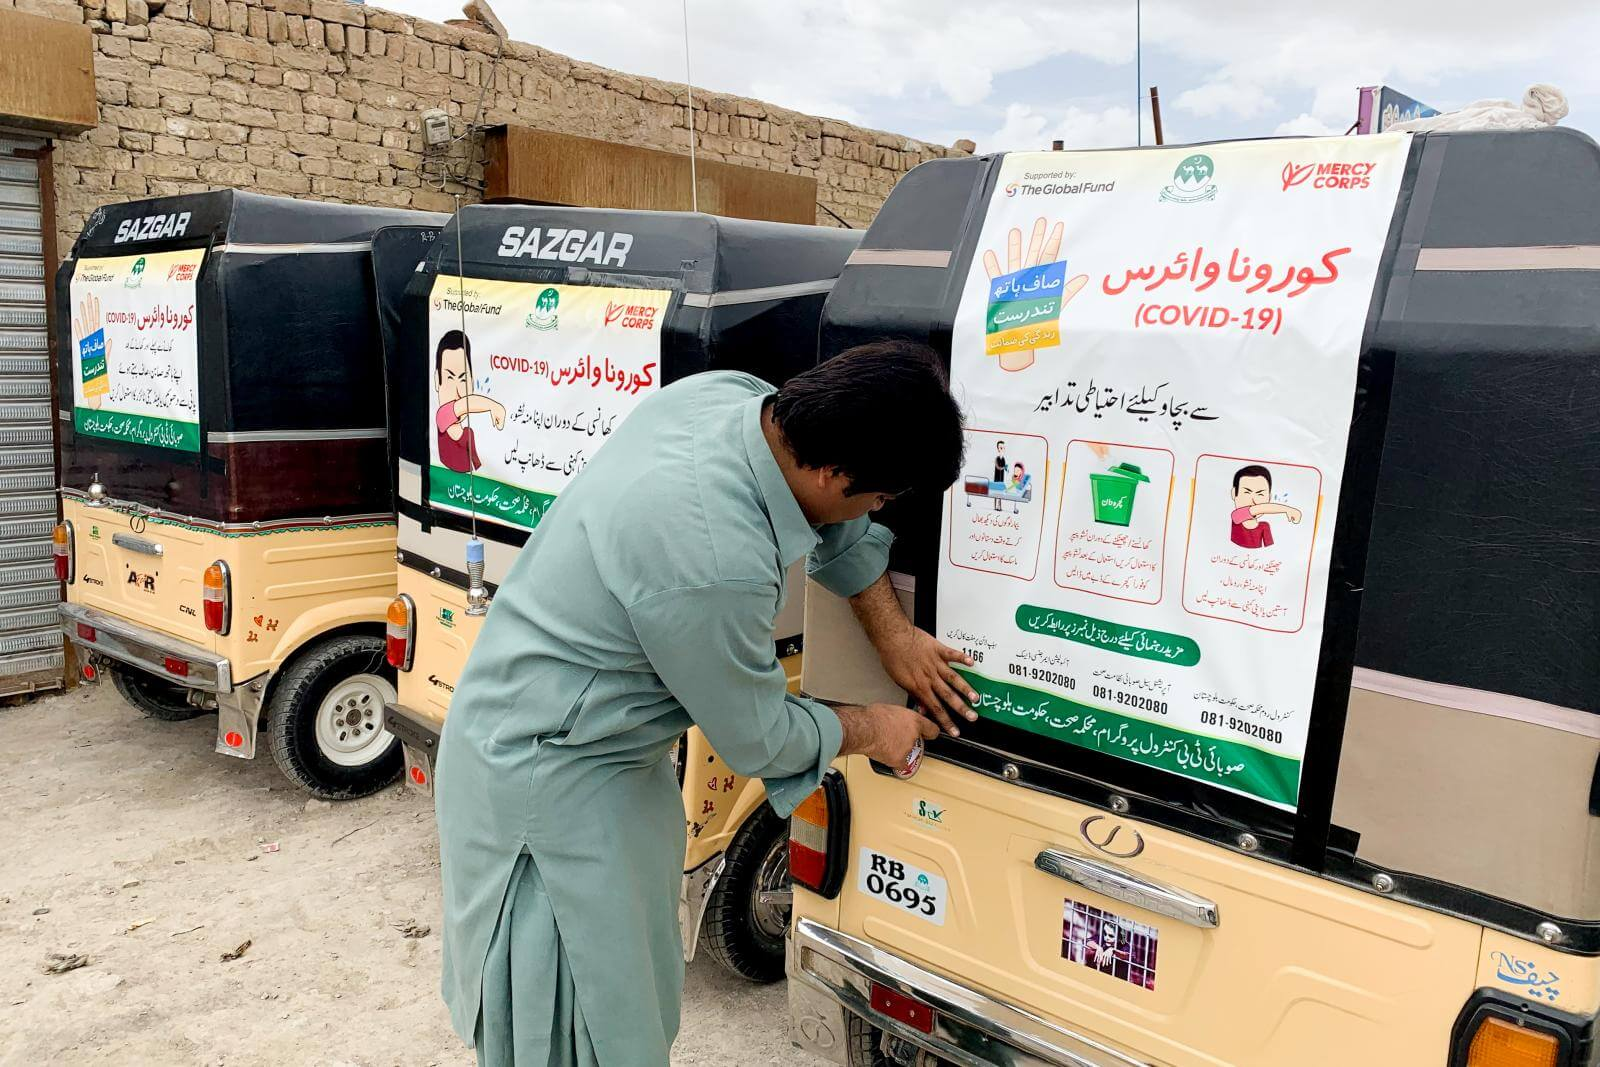 Mercy Corps using tuk tuks to display and share guidance that help reduce the spread of COVID-19 in Pakistan.